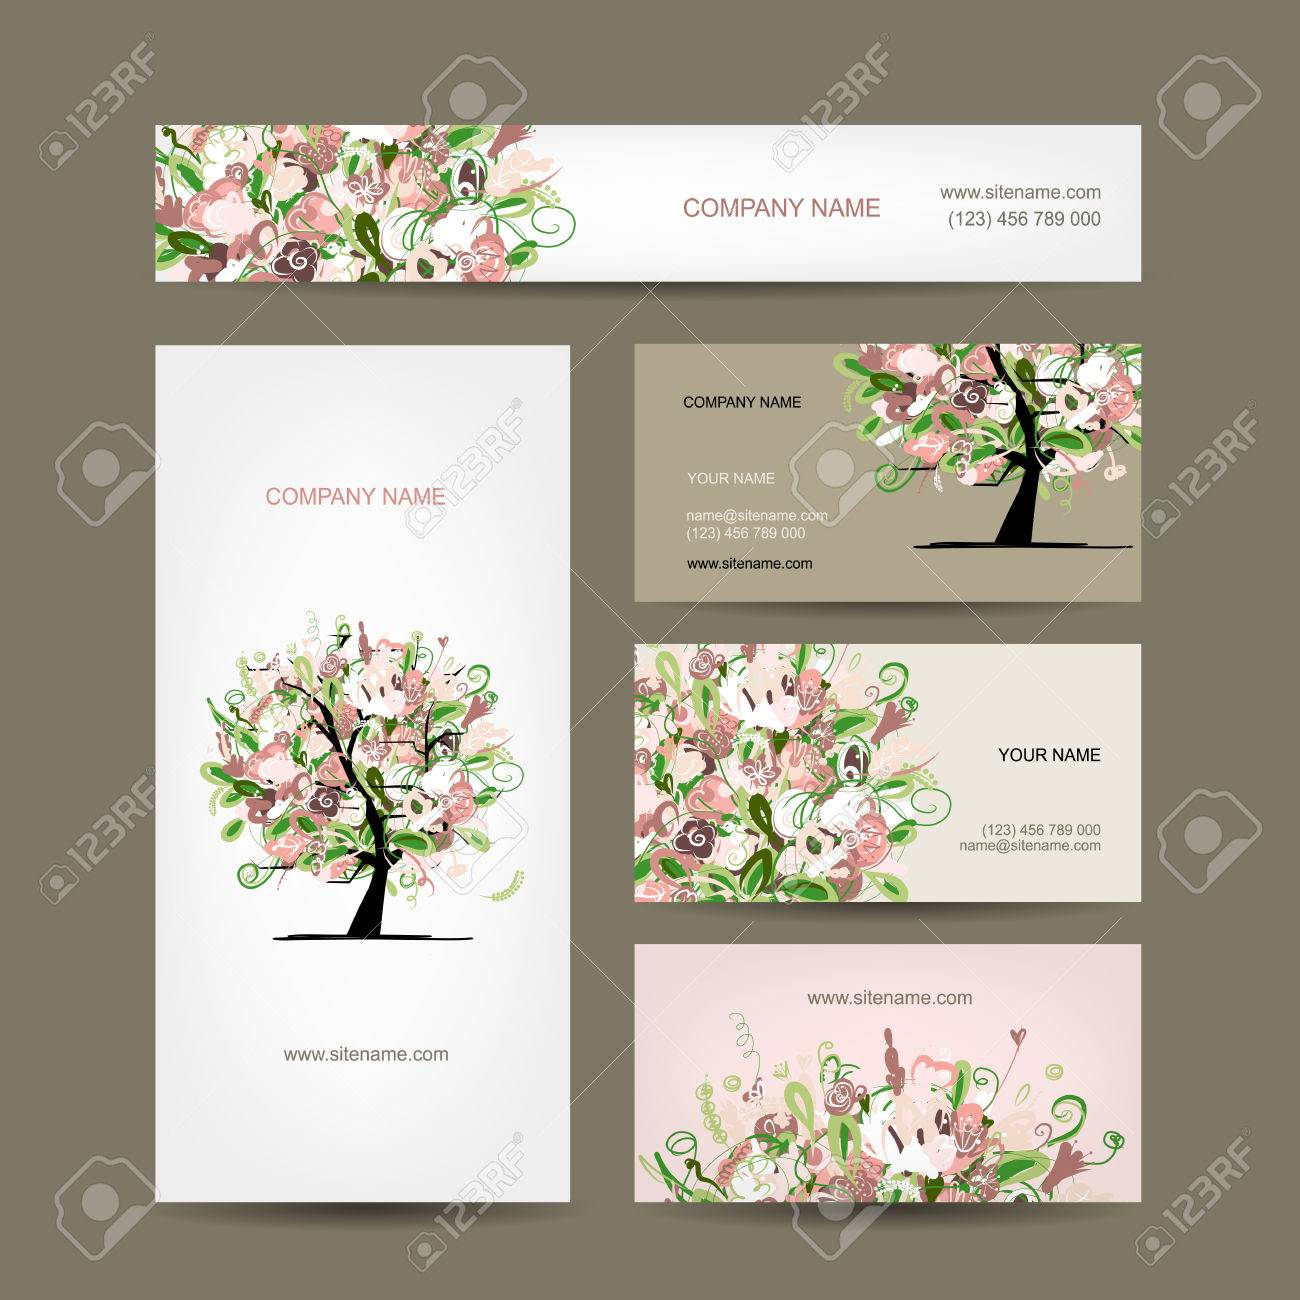 Business Cards Design With Floral Tree Sketch Royalty Free Cliparts ...